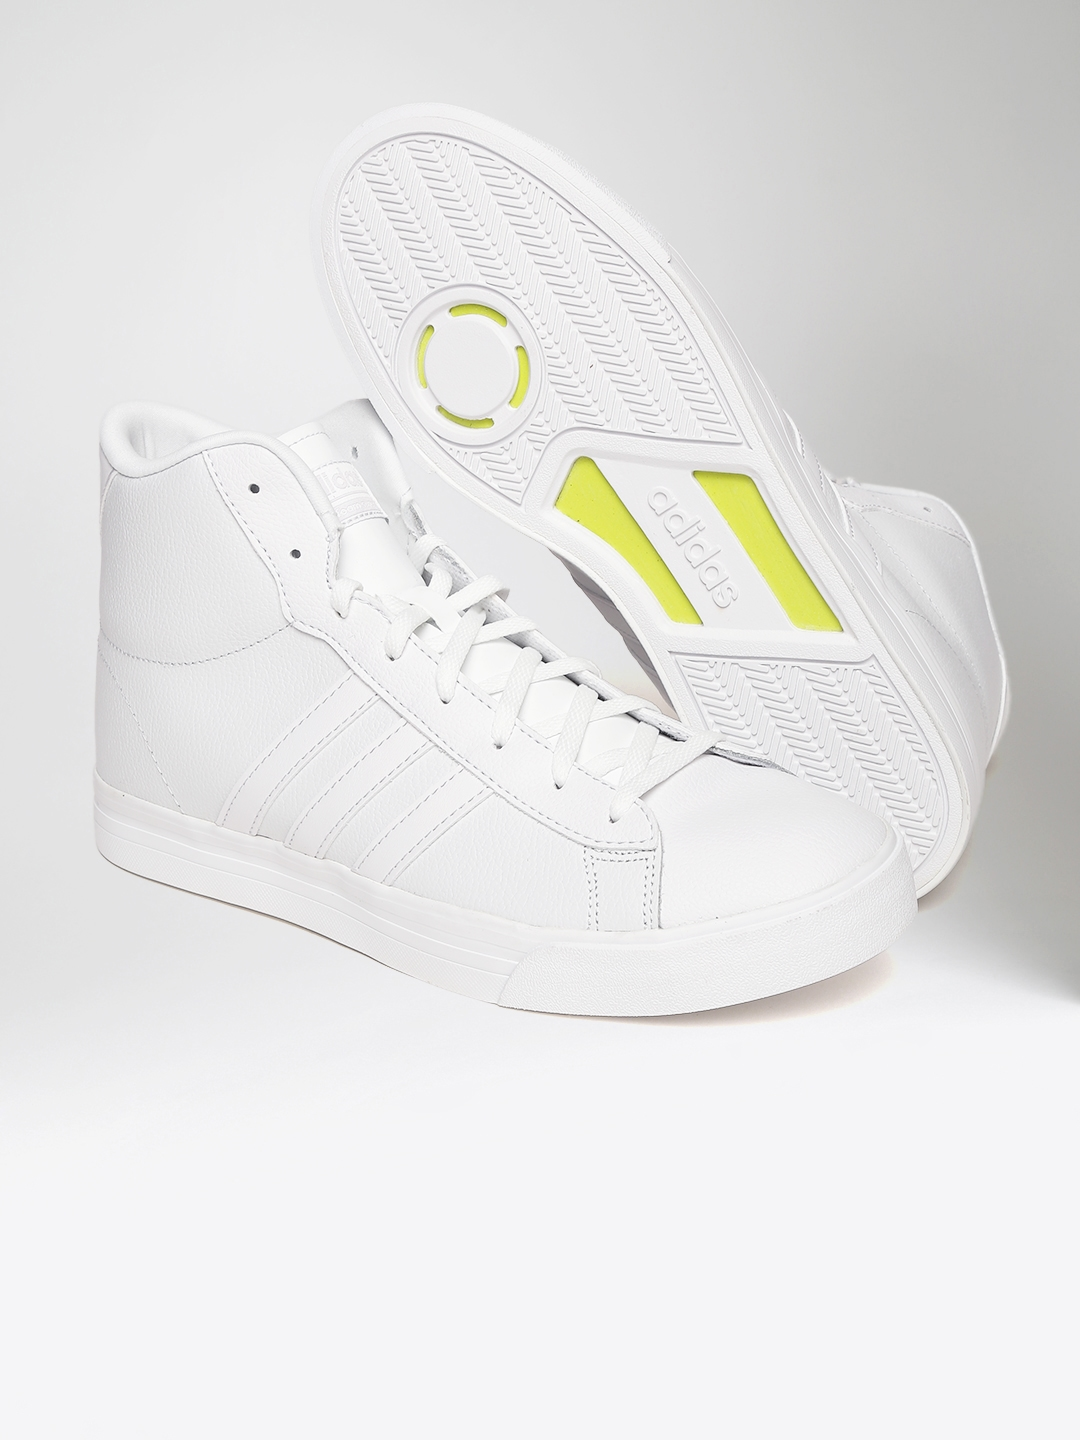 adidas NEO Cloudfoam Super Daily Mid Men's Shoes